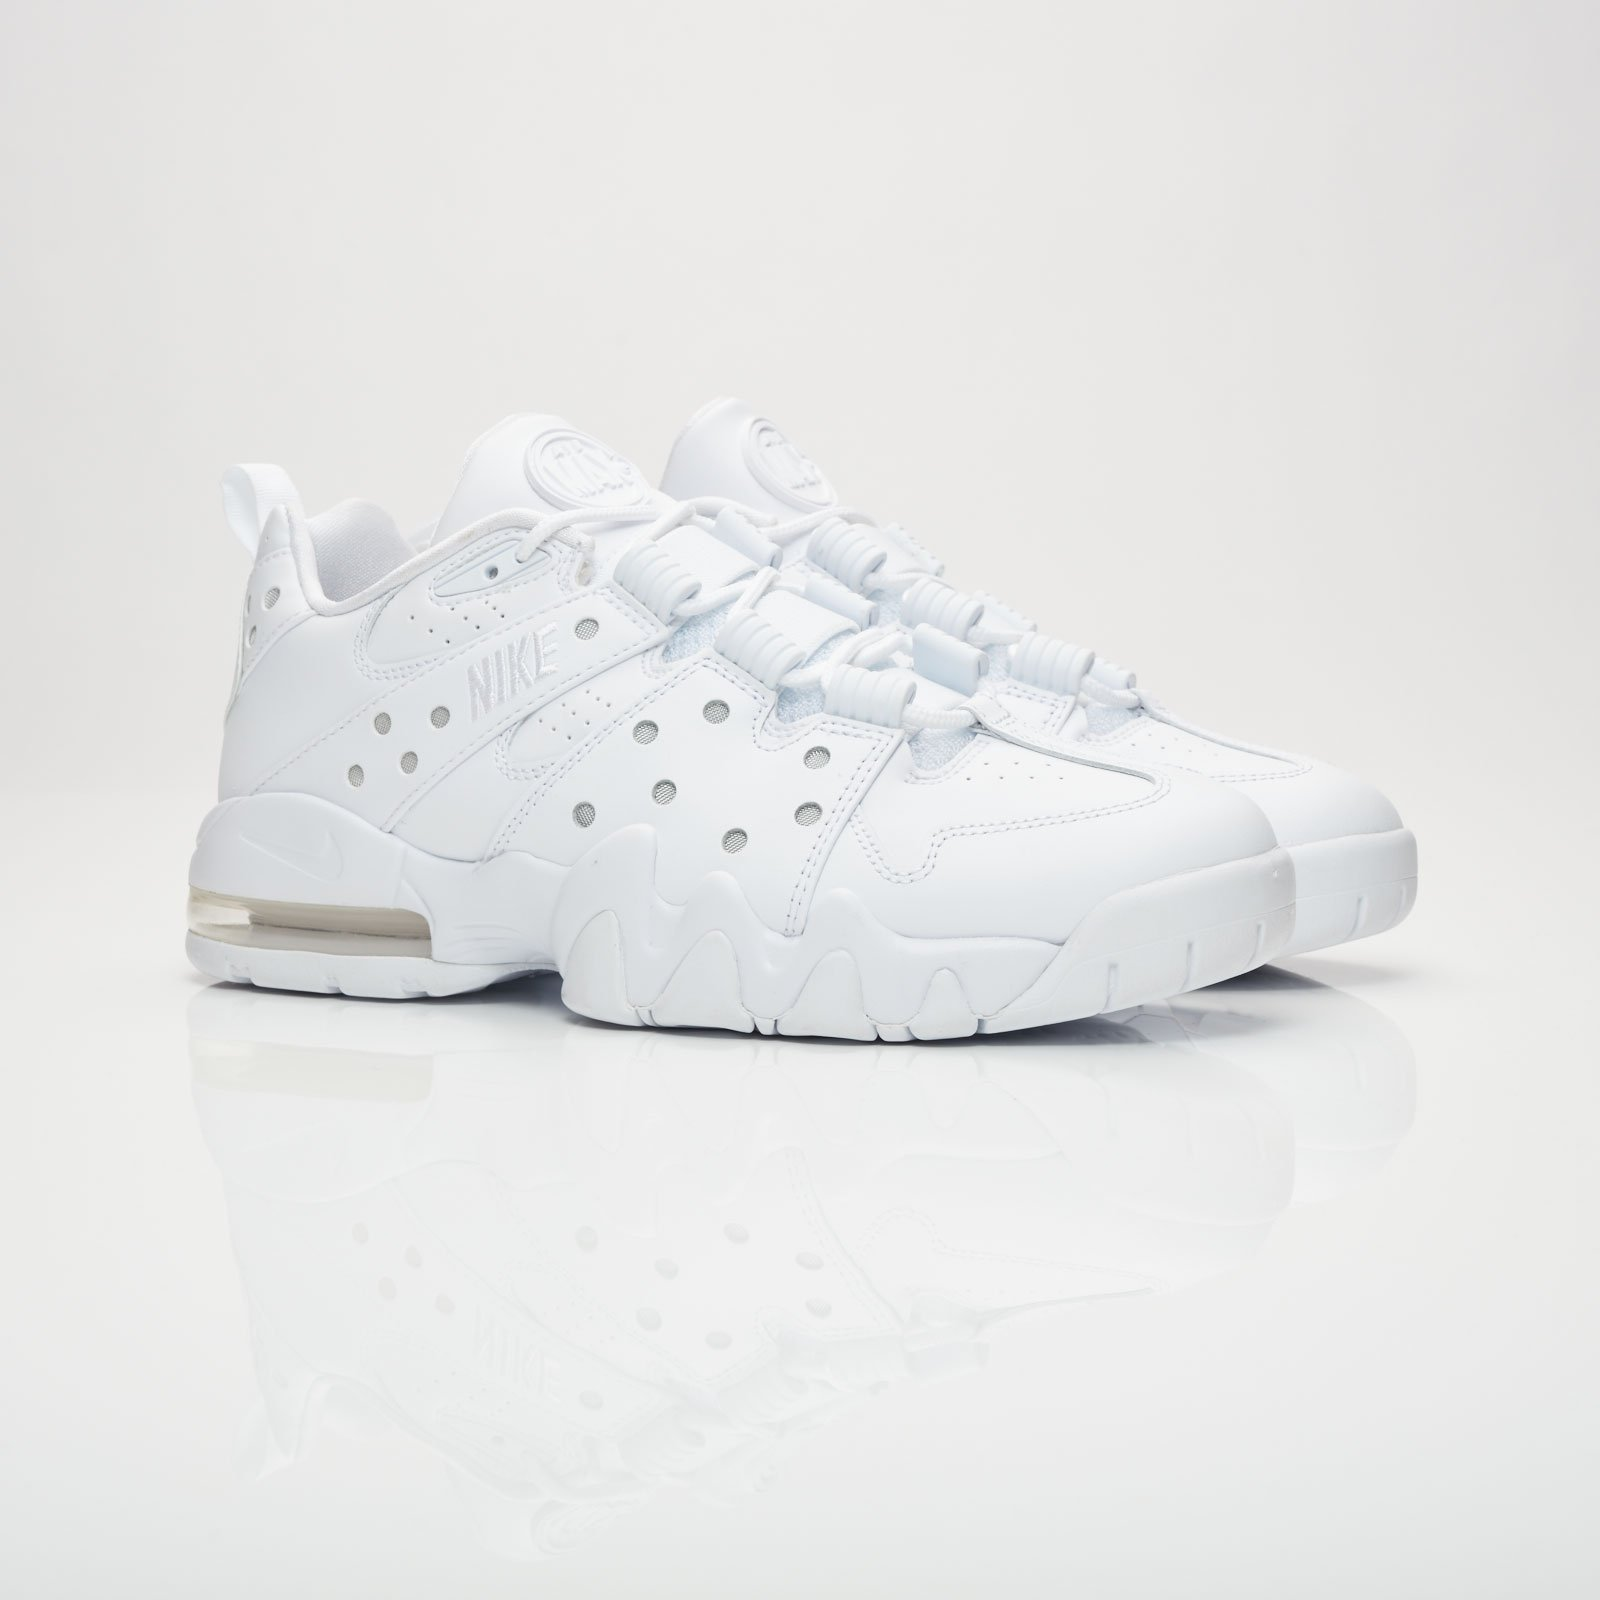 the latest d21f4 cfe9c Nike Air Max2 CB 94 Low - 917752-100 - Sneakersnstuff | sneakers ...